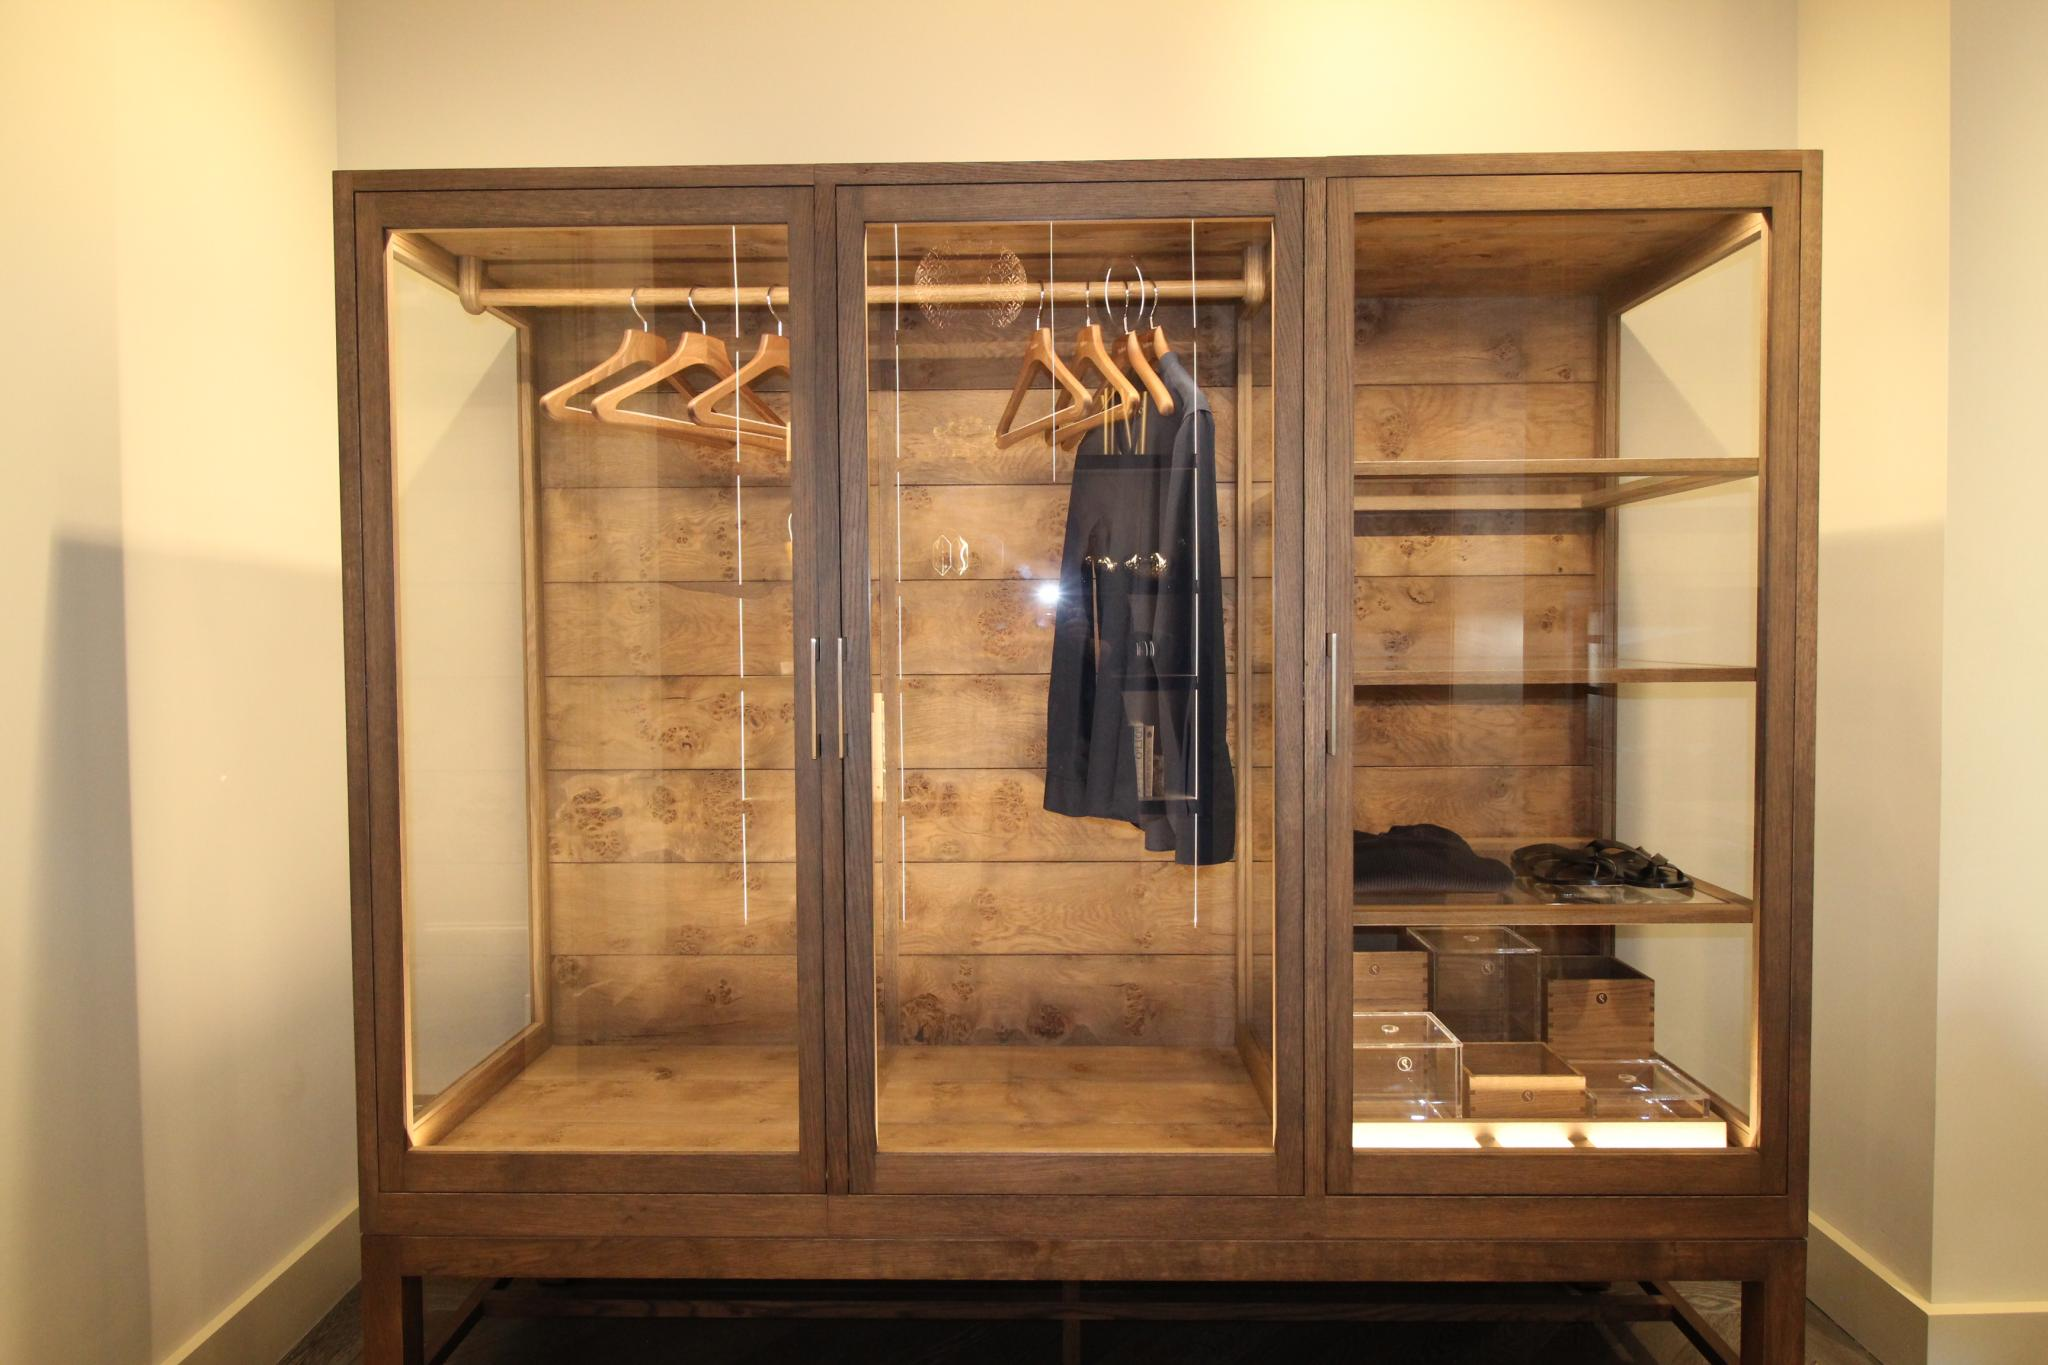 on sale fb142 d3a14 53% OFF RRP £32,000 + SMALLBONE OF DEVIZES Worshipful Wardrobe, South